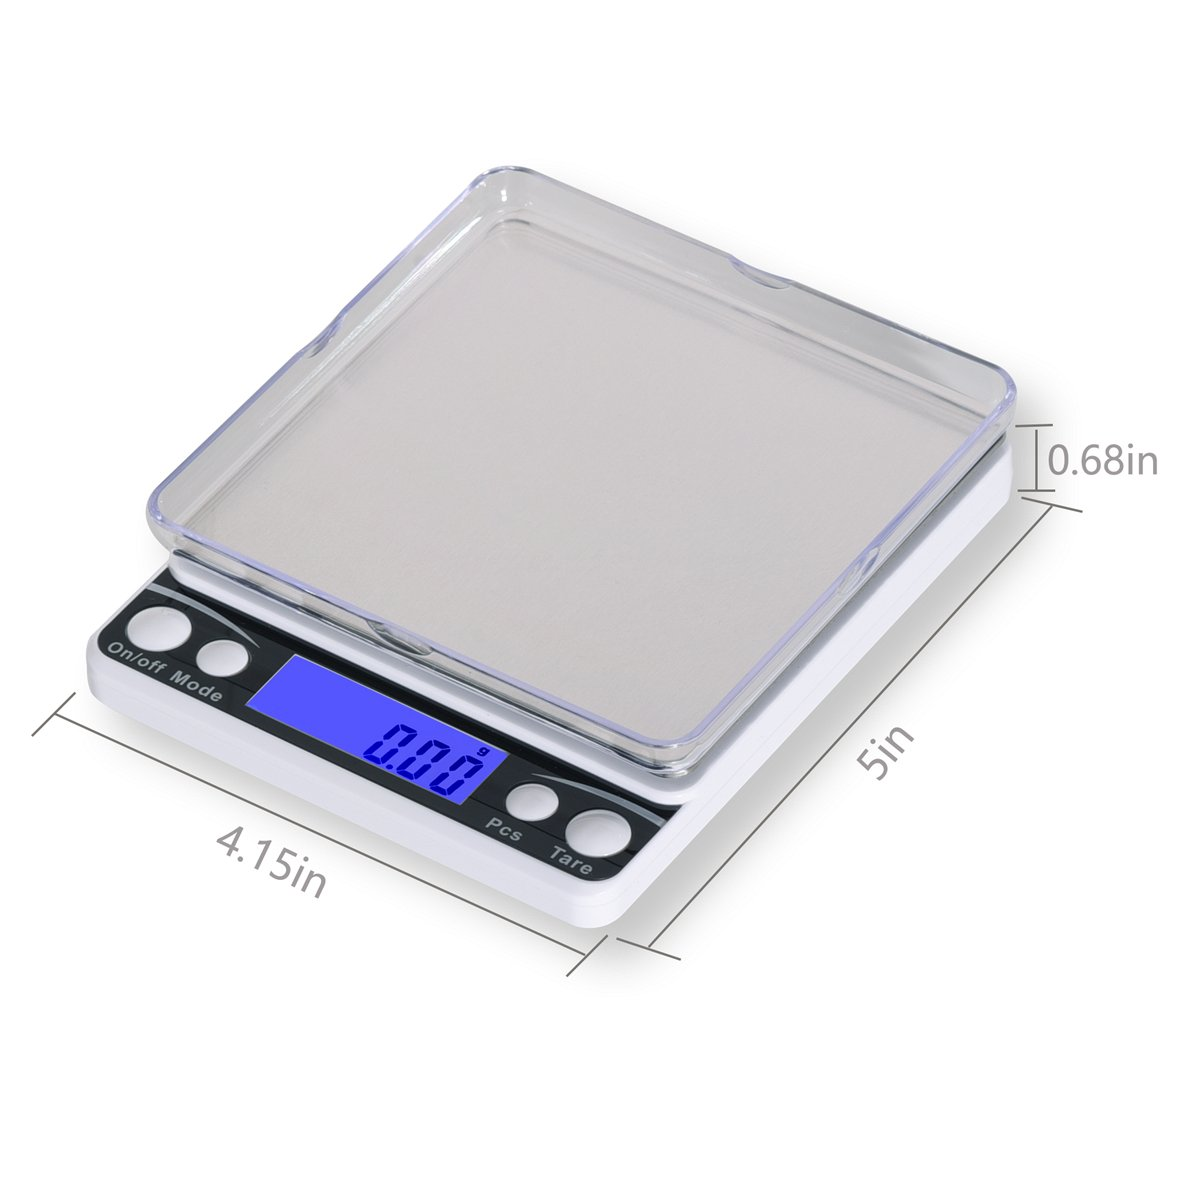 Amazon.com: Xornis 500g x 0.01g Digital Pocket Scales Portable High Precision Jewelry Food Coffee Tea Kitchen Scale with Stainless Steel Platform, ...